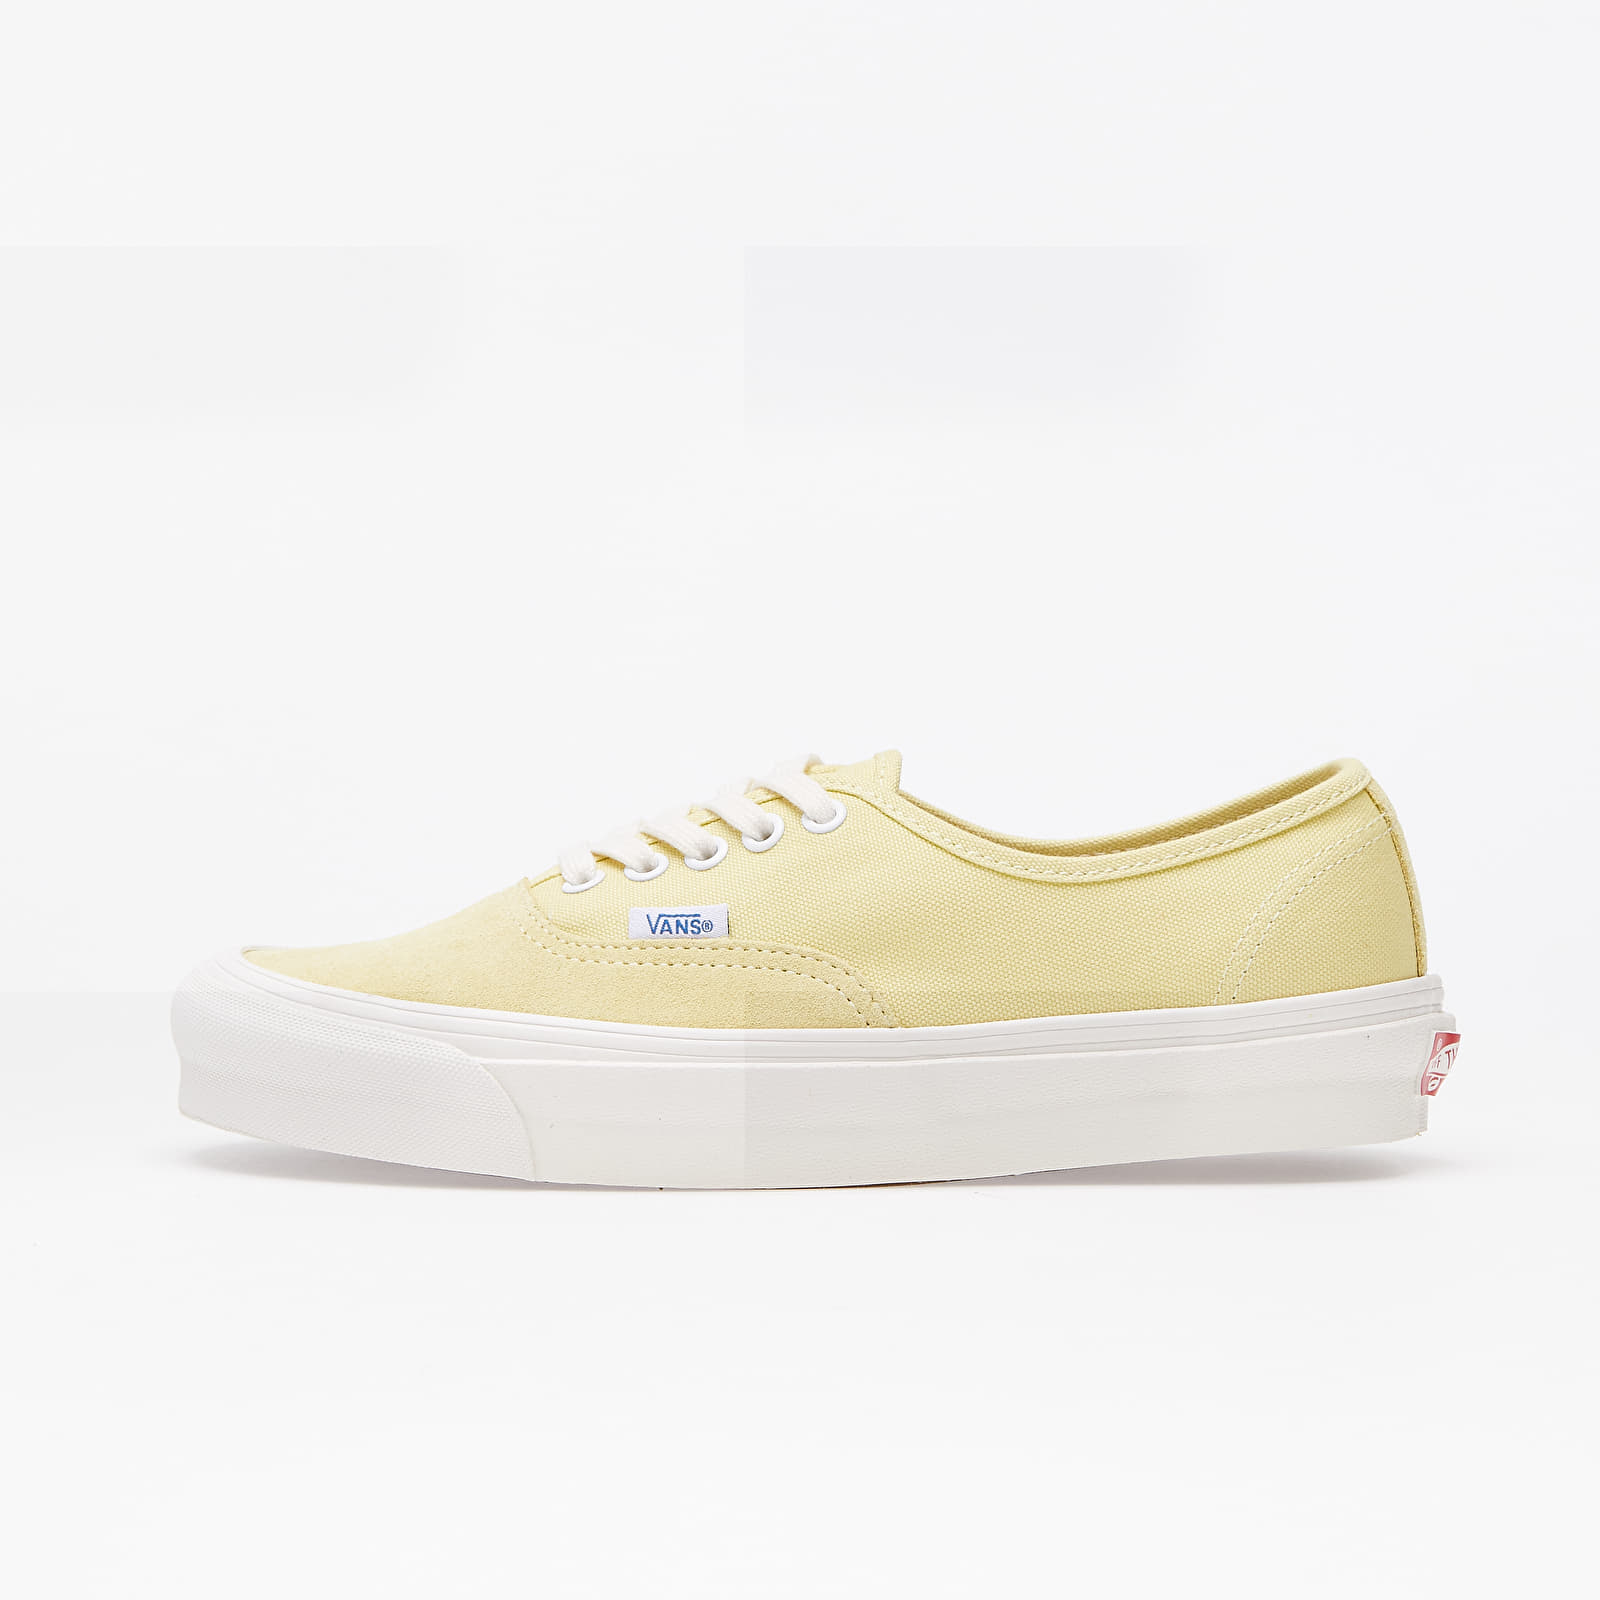 Γυναικεία παπούτσια Vans OG Authentic LX (Suede/ Canvas) Chardonnay